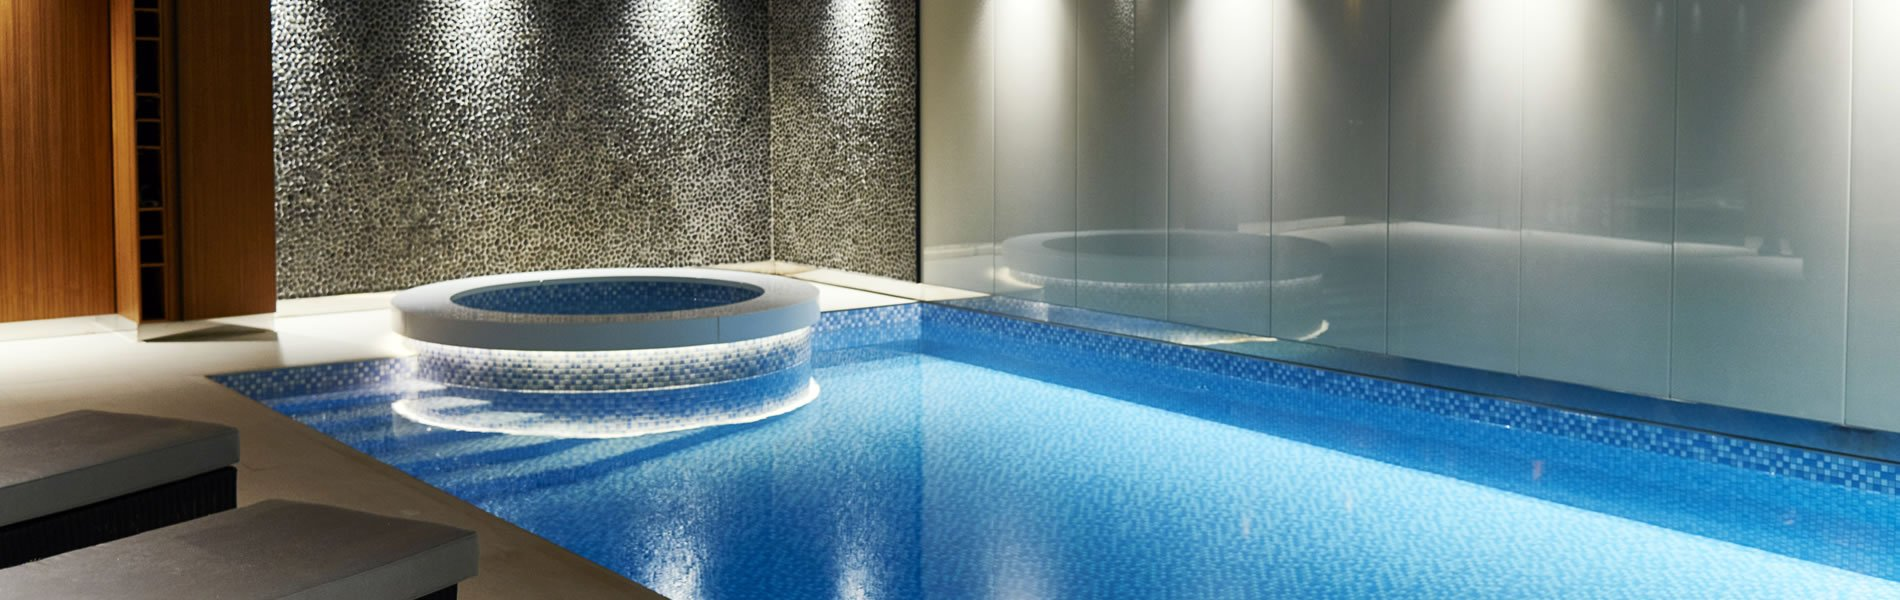 Roman pools swimming pool design installation Basement swimming pool construction